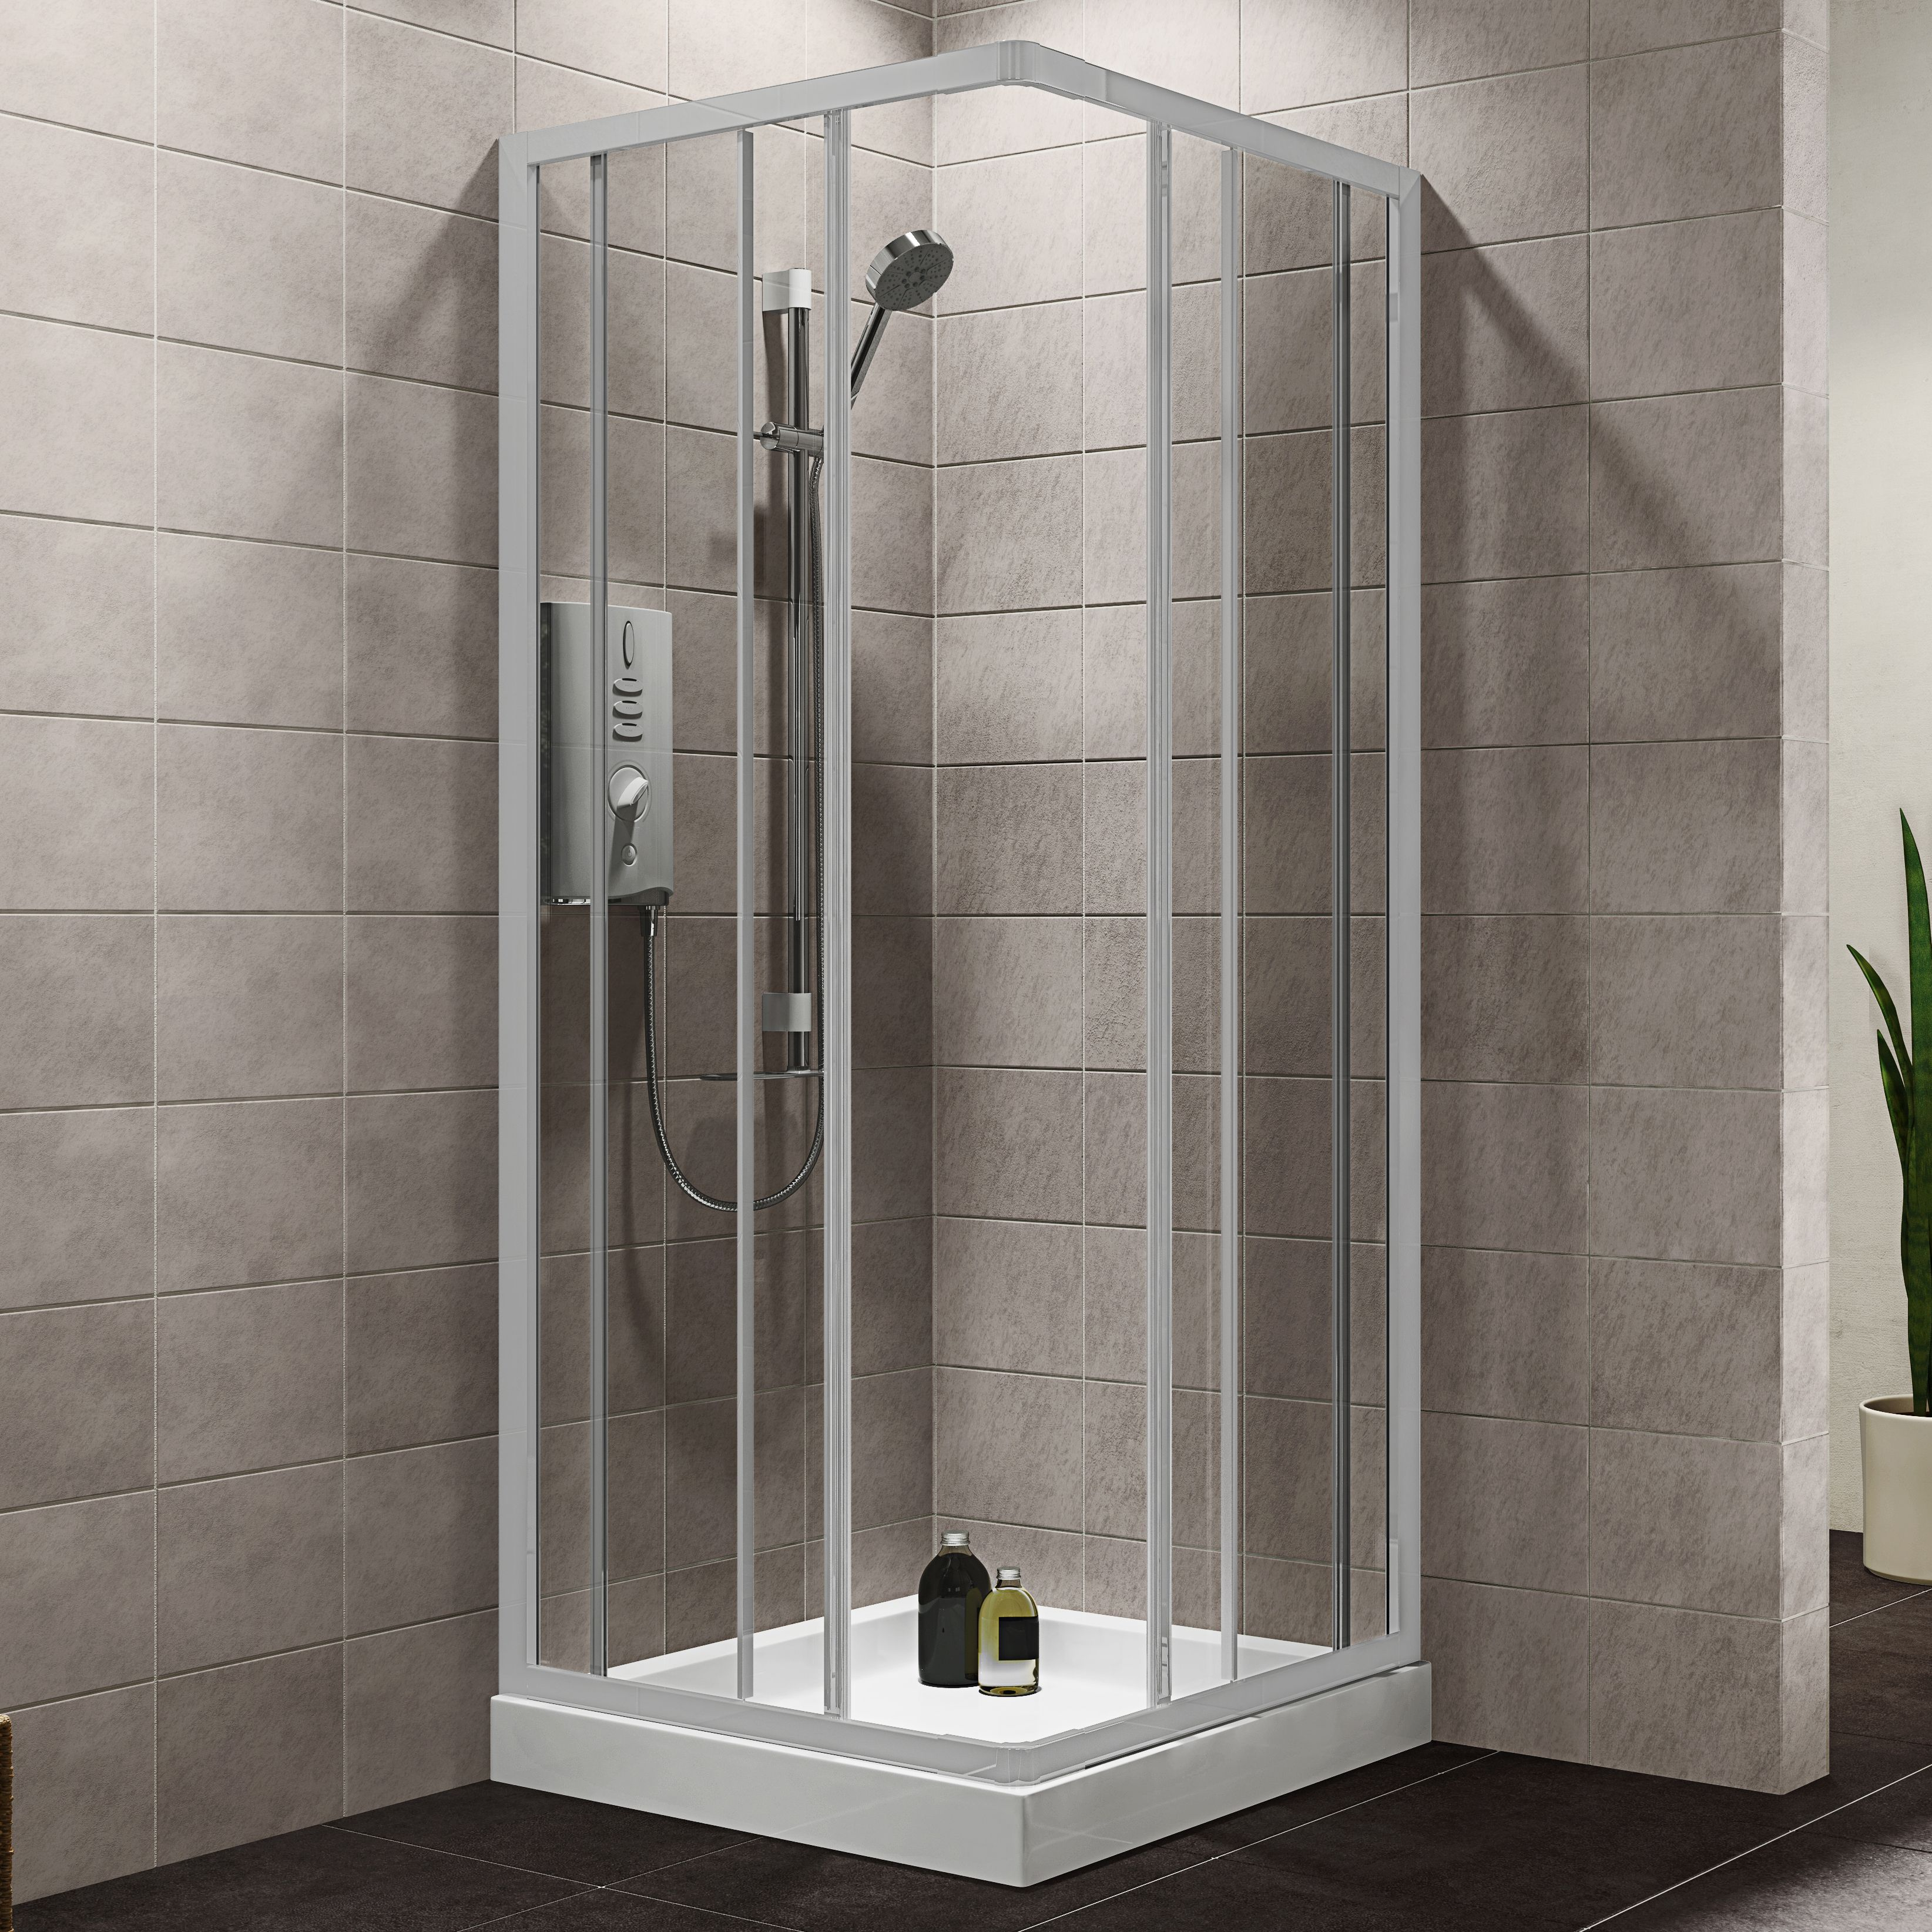 Plumbsure Square Shower Enclosure, Tray & Waste Pack with White ...